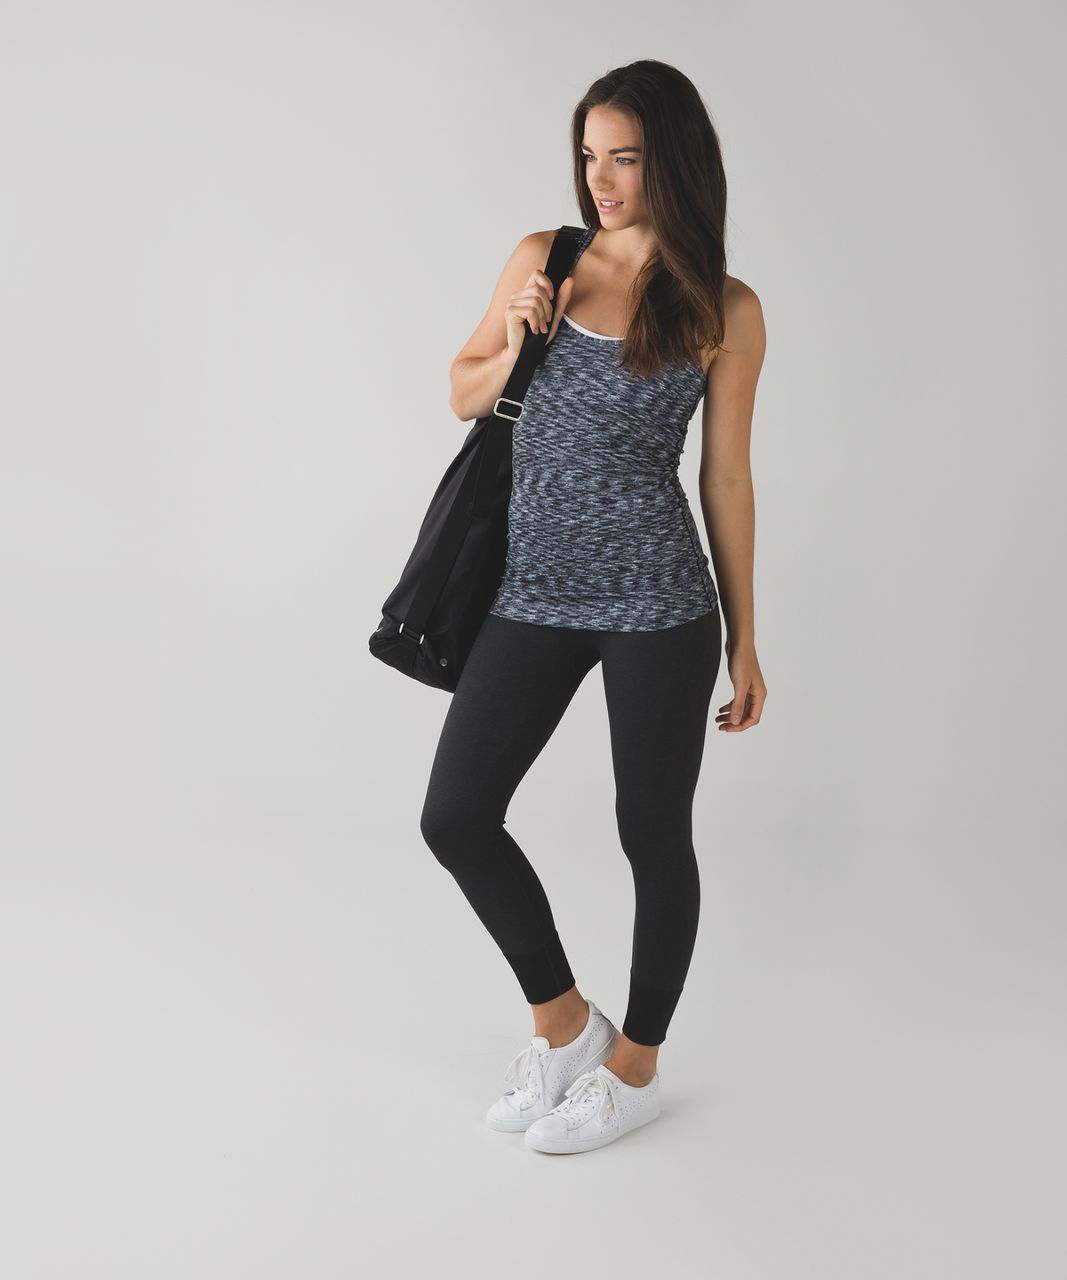 Lululemon Cool Racerback - Dramatic Static White Black